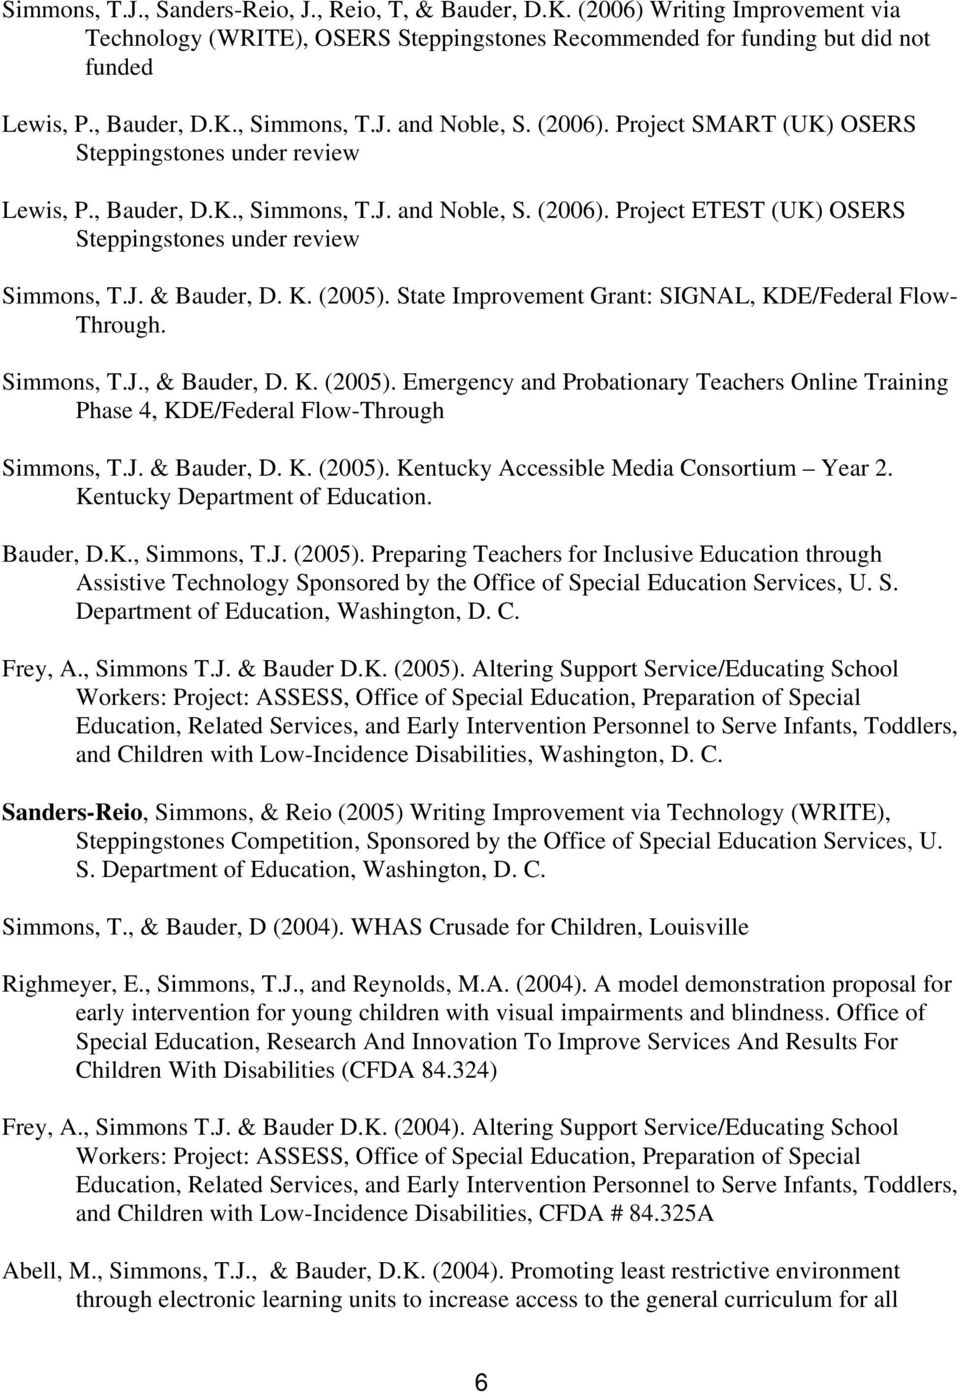 J. & Bauder, D. K. (2005). State Improvement Grant: SIGNAL, KDE/Federal Flow- Through. Simmons, T.J., & Bauder, D. K. (2005). Emergency and Probationary Teachers Online Training Phase 4, KDE/Federal Flow-Through Simmons, T.